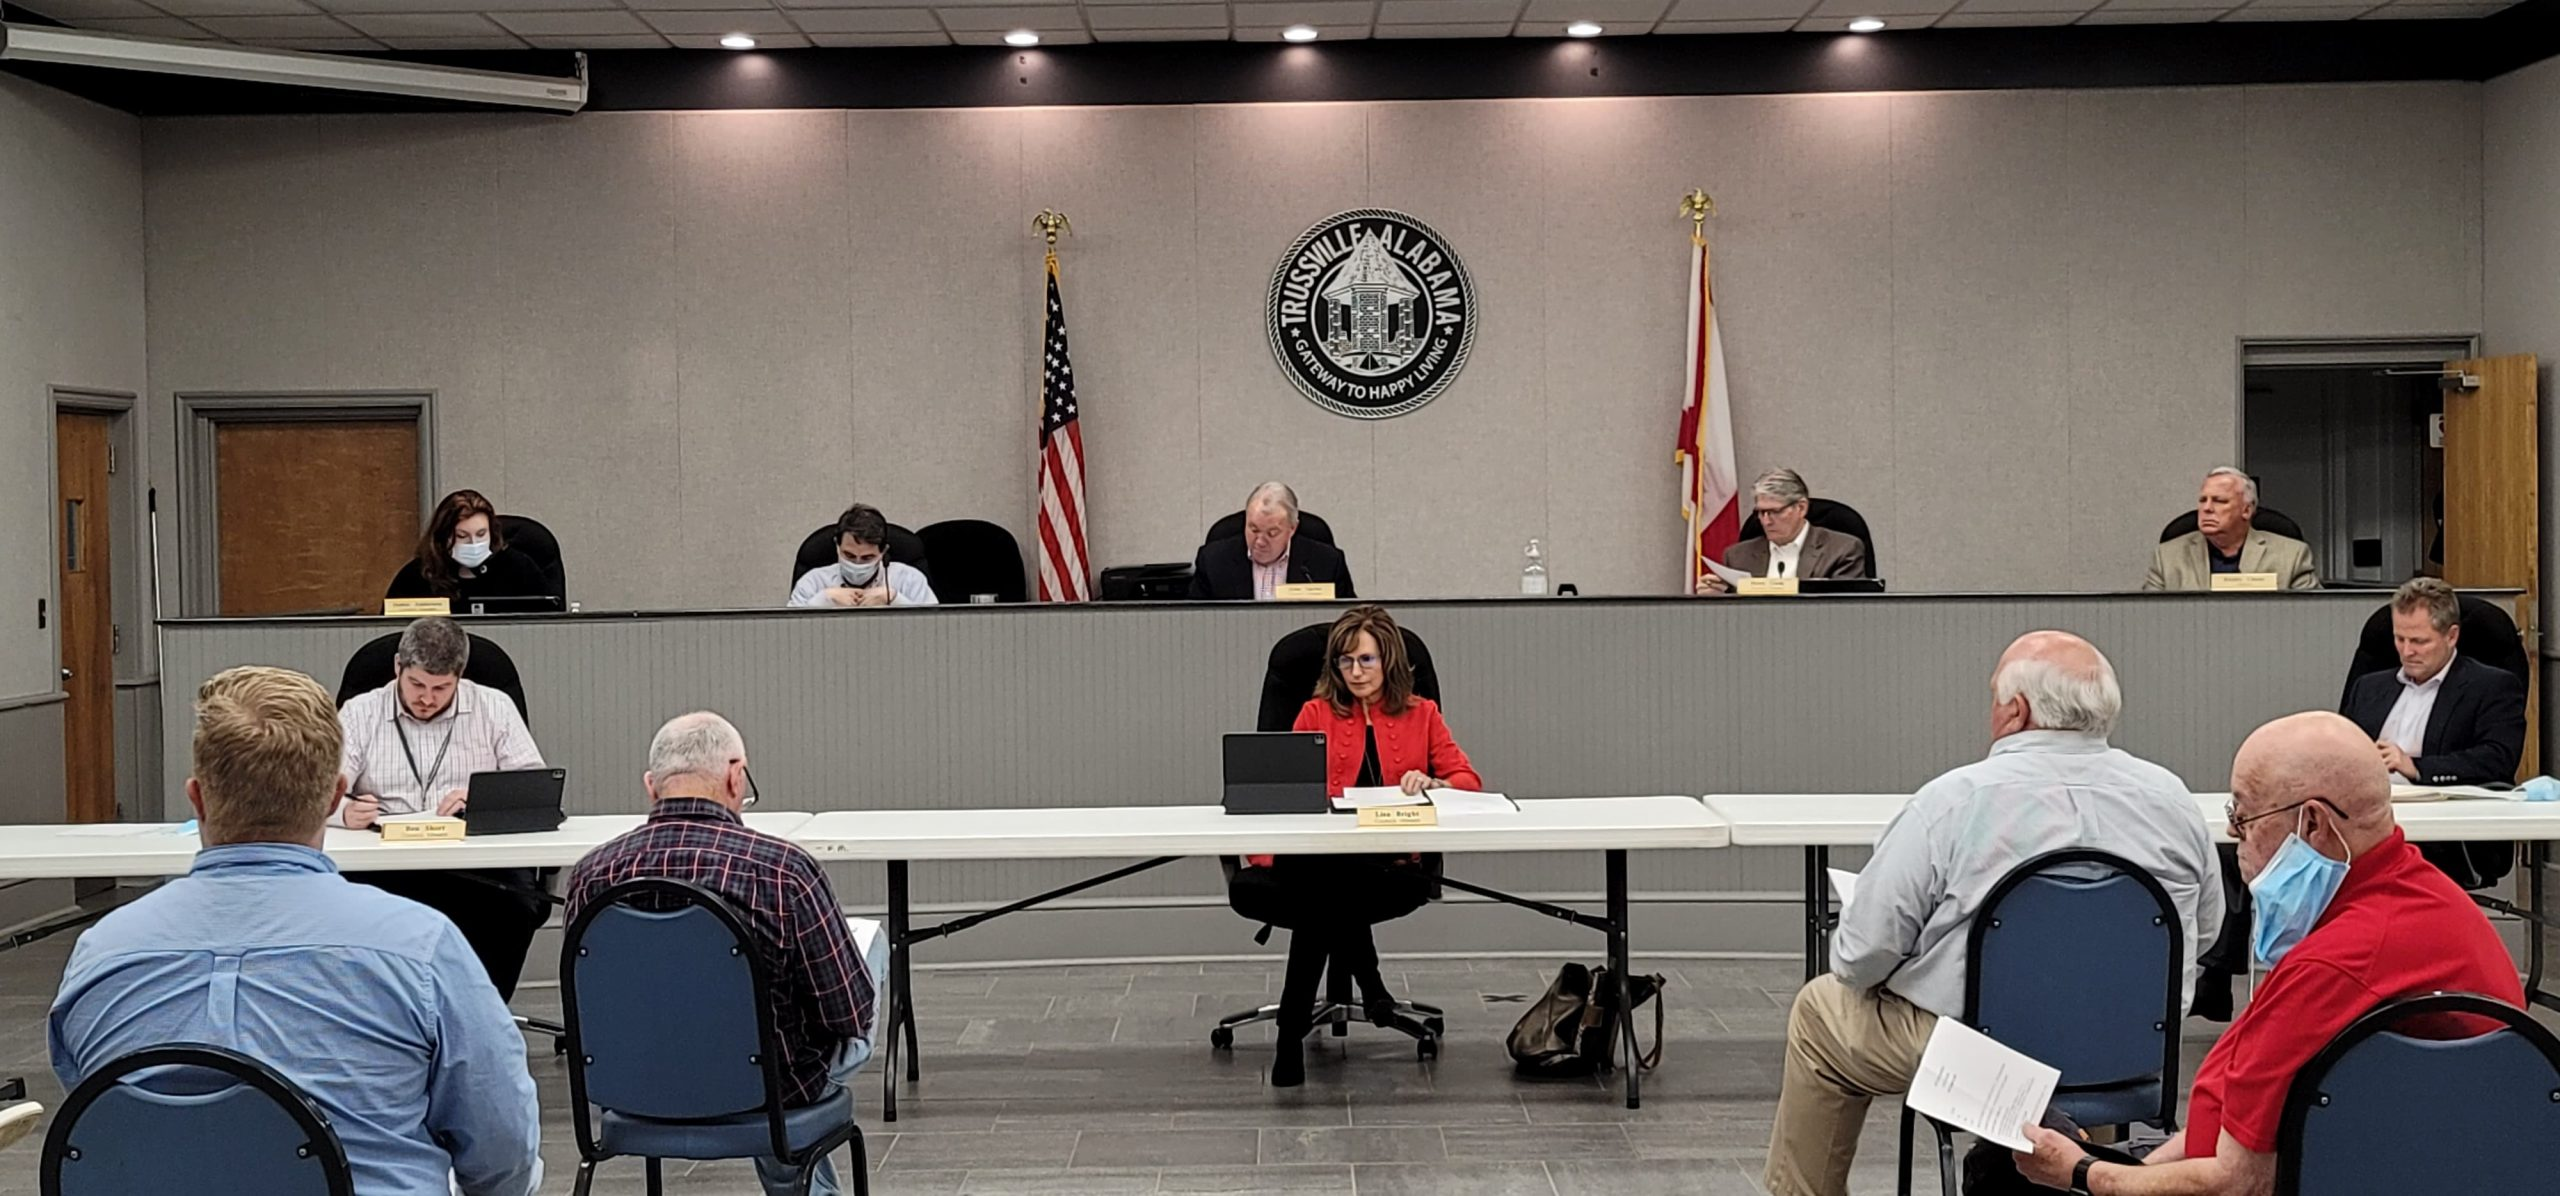 Trussville Council hears from citizens on proposed gas station, approves alcohol sales for Cracker Barrel